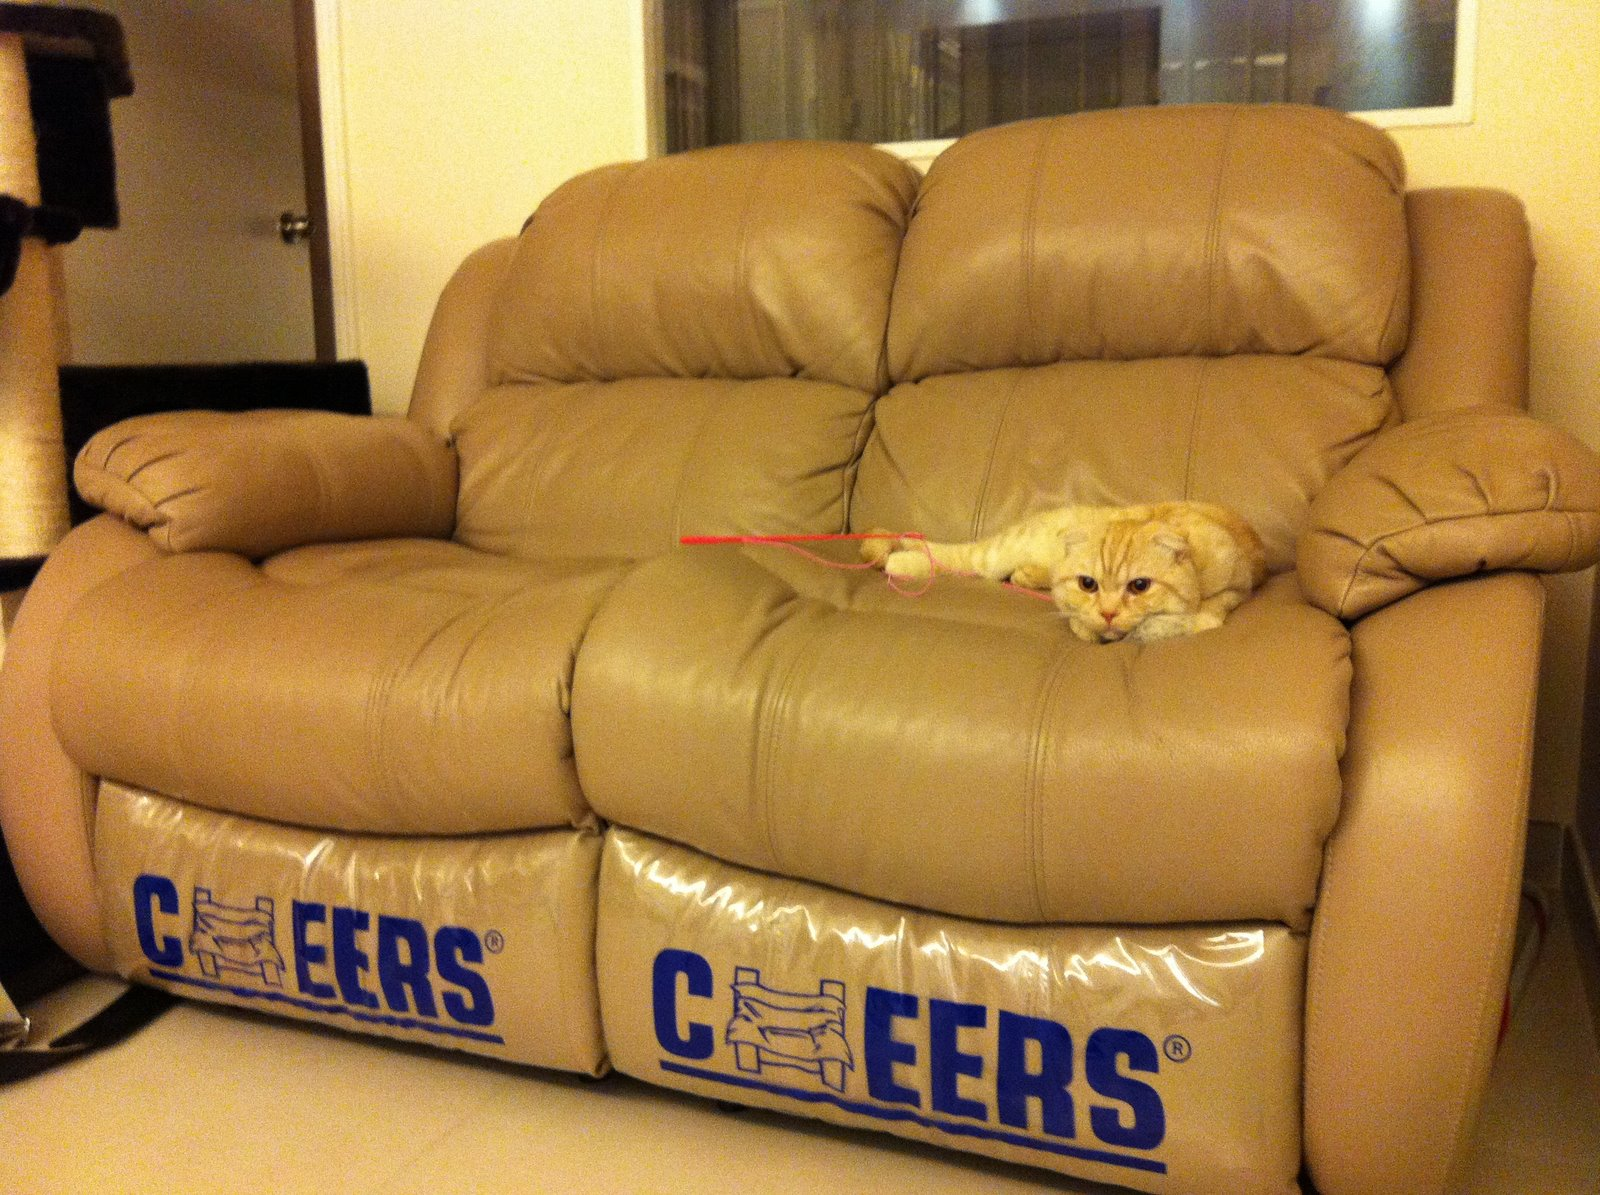 Cheers Sofa Cheers Sofa 5185m L3 2e Phr Dual Motion With